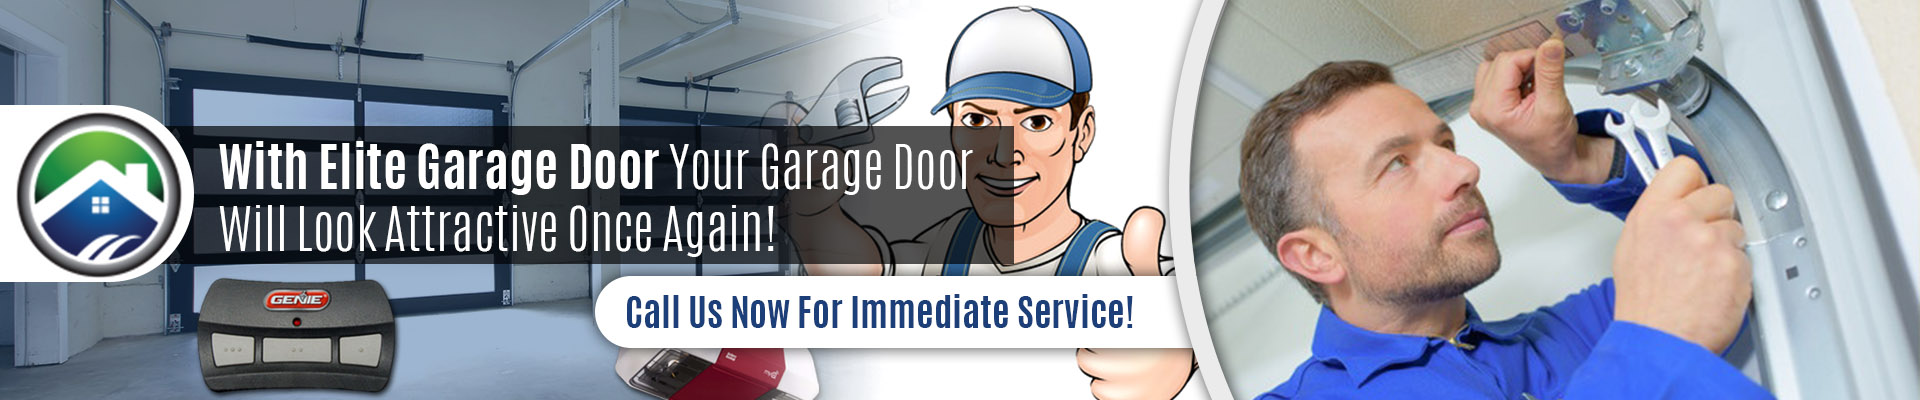 Garage Door Off Track Repair - Elite Tech Services, LLC